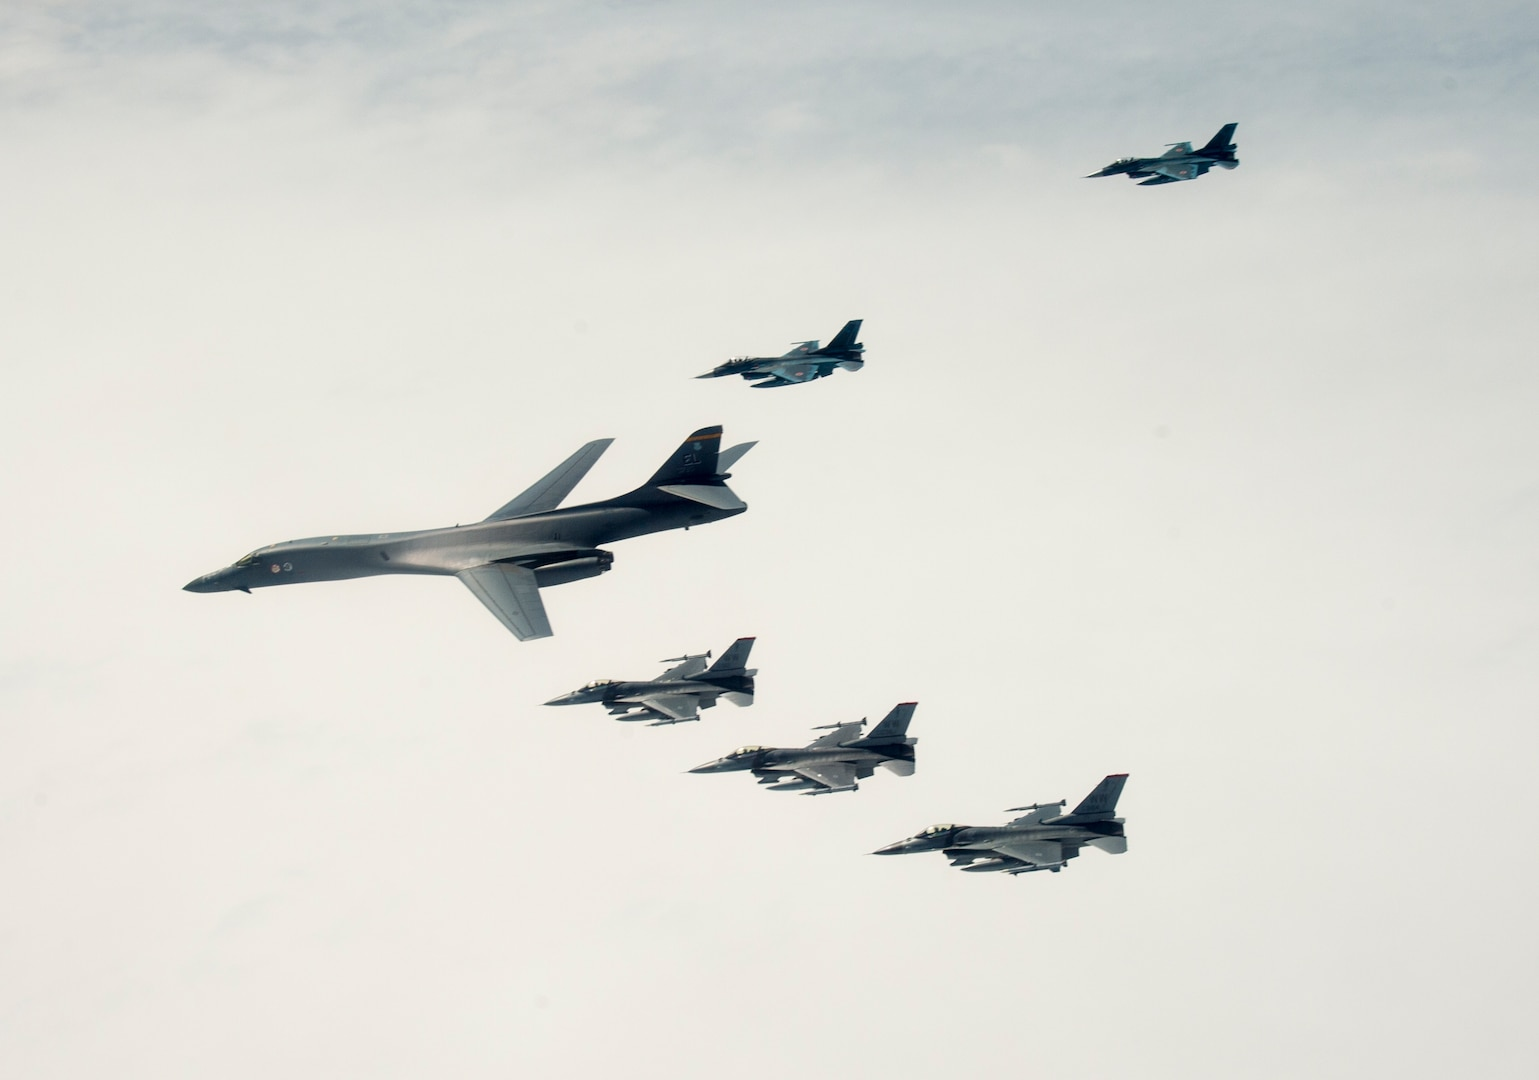 A U.S. Air Force B-1B Lancer from Ellsworth Air Force Base, S.D. and F-16 Fighting Falcons from Misawa Air Base, Japan, conducted bilateral joint training with Japan Air Self-Defense Force (JASDF) F-2s off the coast of Northern Japan, April 22, 2020. U.S. Strategic Command's bomber forces regularly conduct combined theater security cooperation engagements with allies and partners, demonstrating U.S. capability to command, control and conduct bomber missions around the world. (U.S. Air Force photo by Tech. Sgt. Timothy Moore)